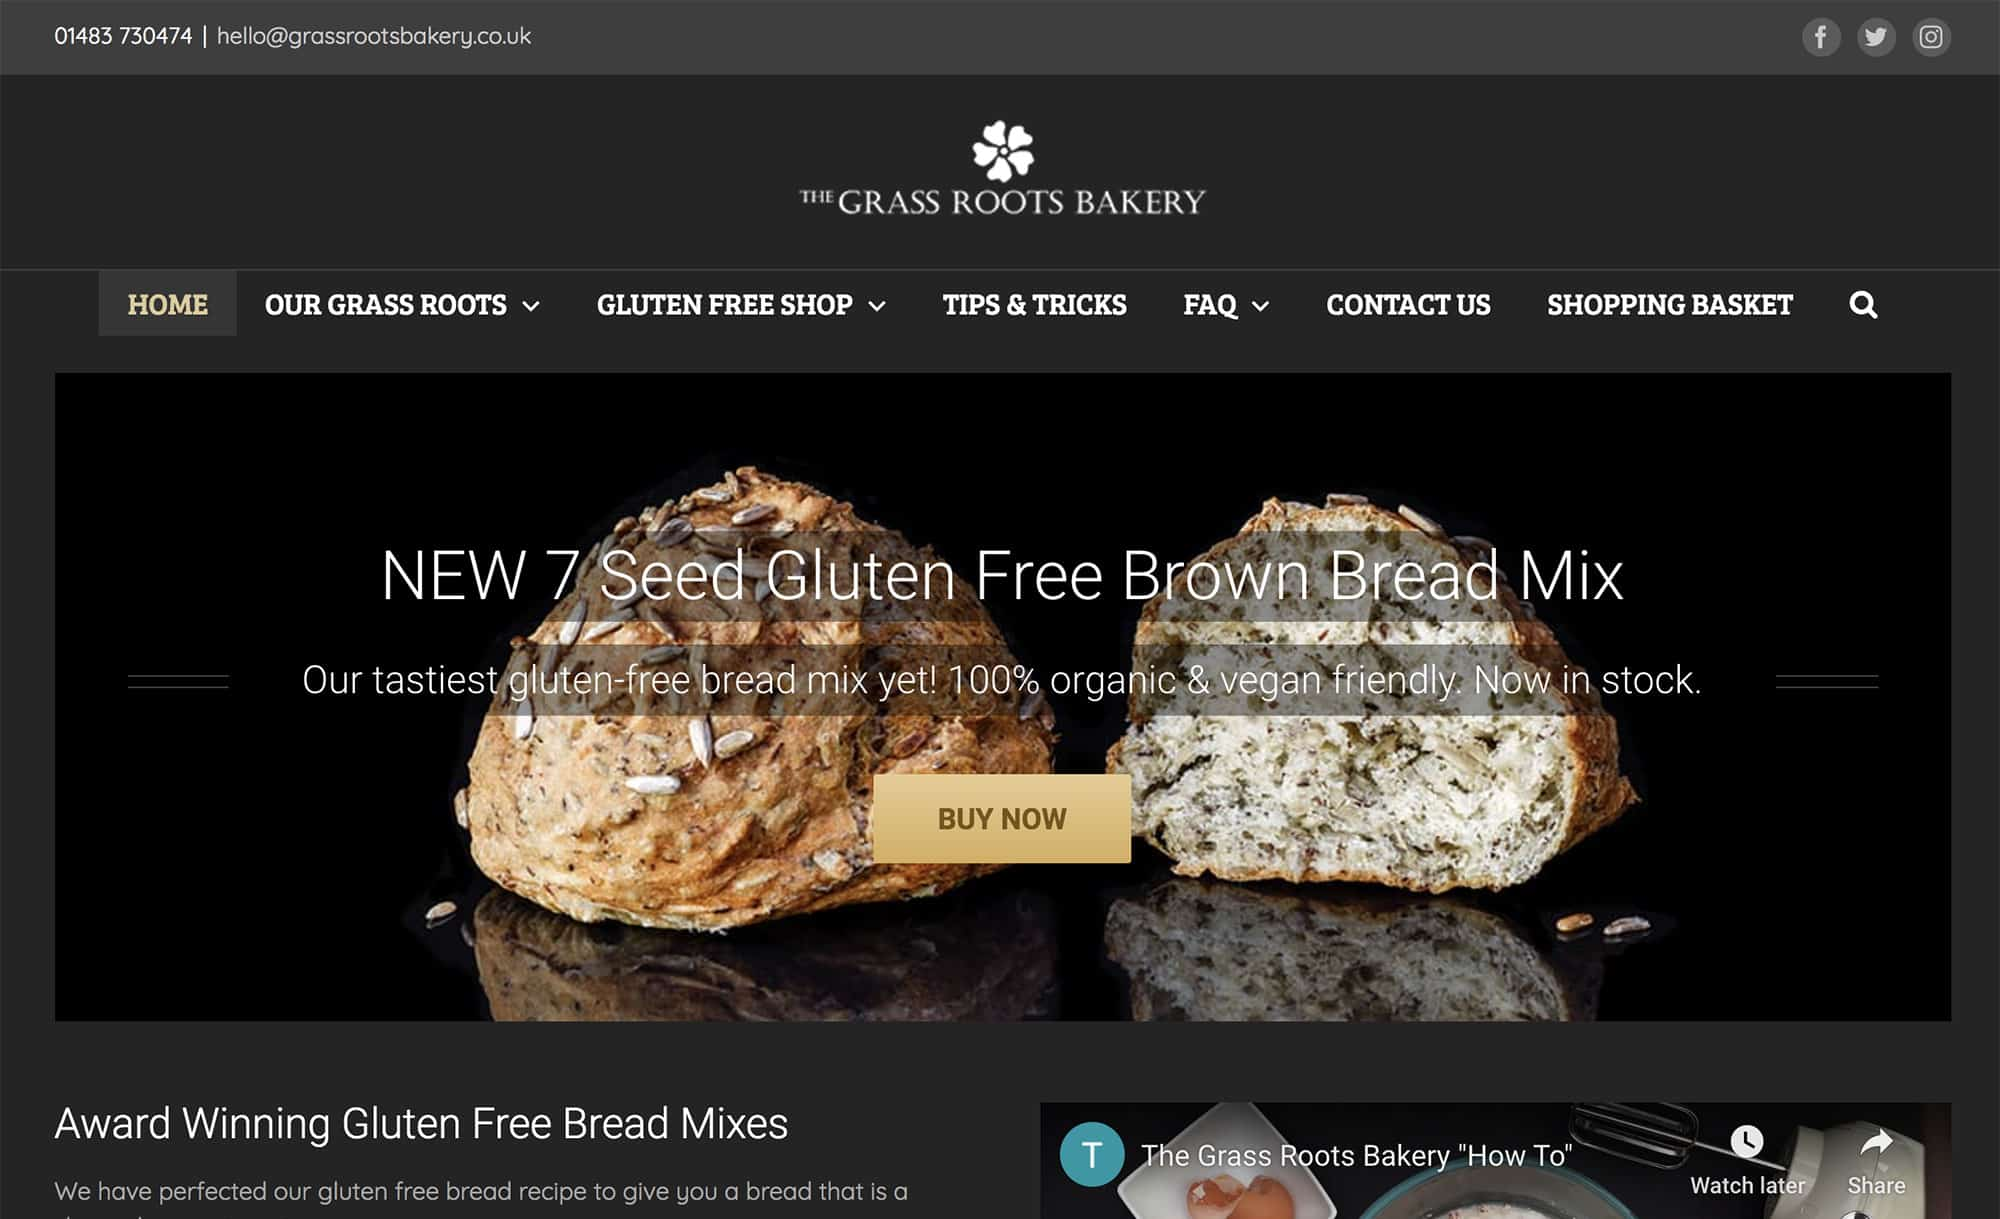 Grass Roots Bakery website homepage